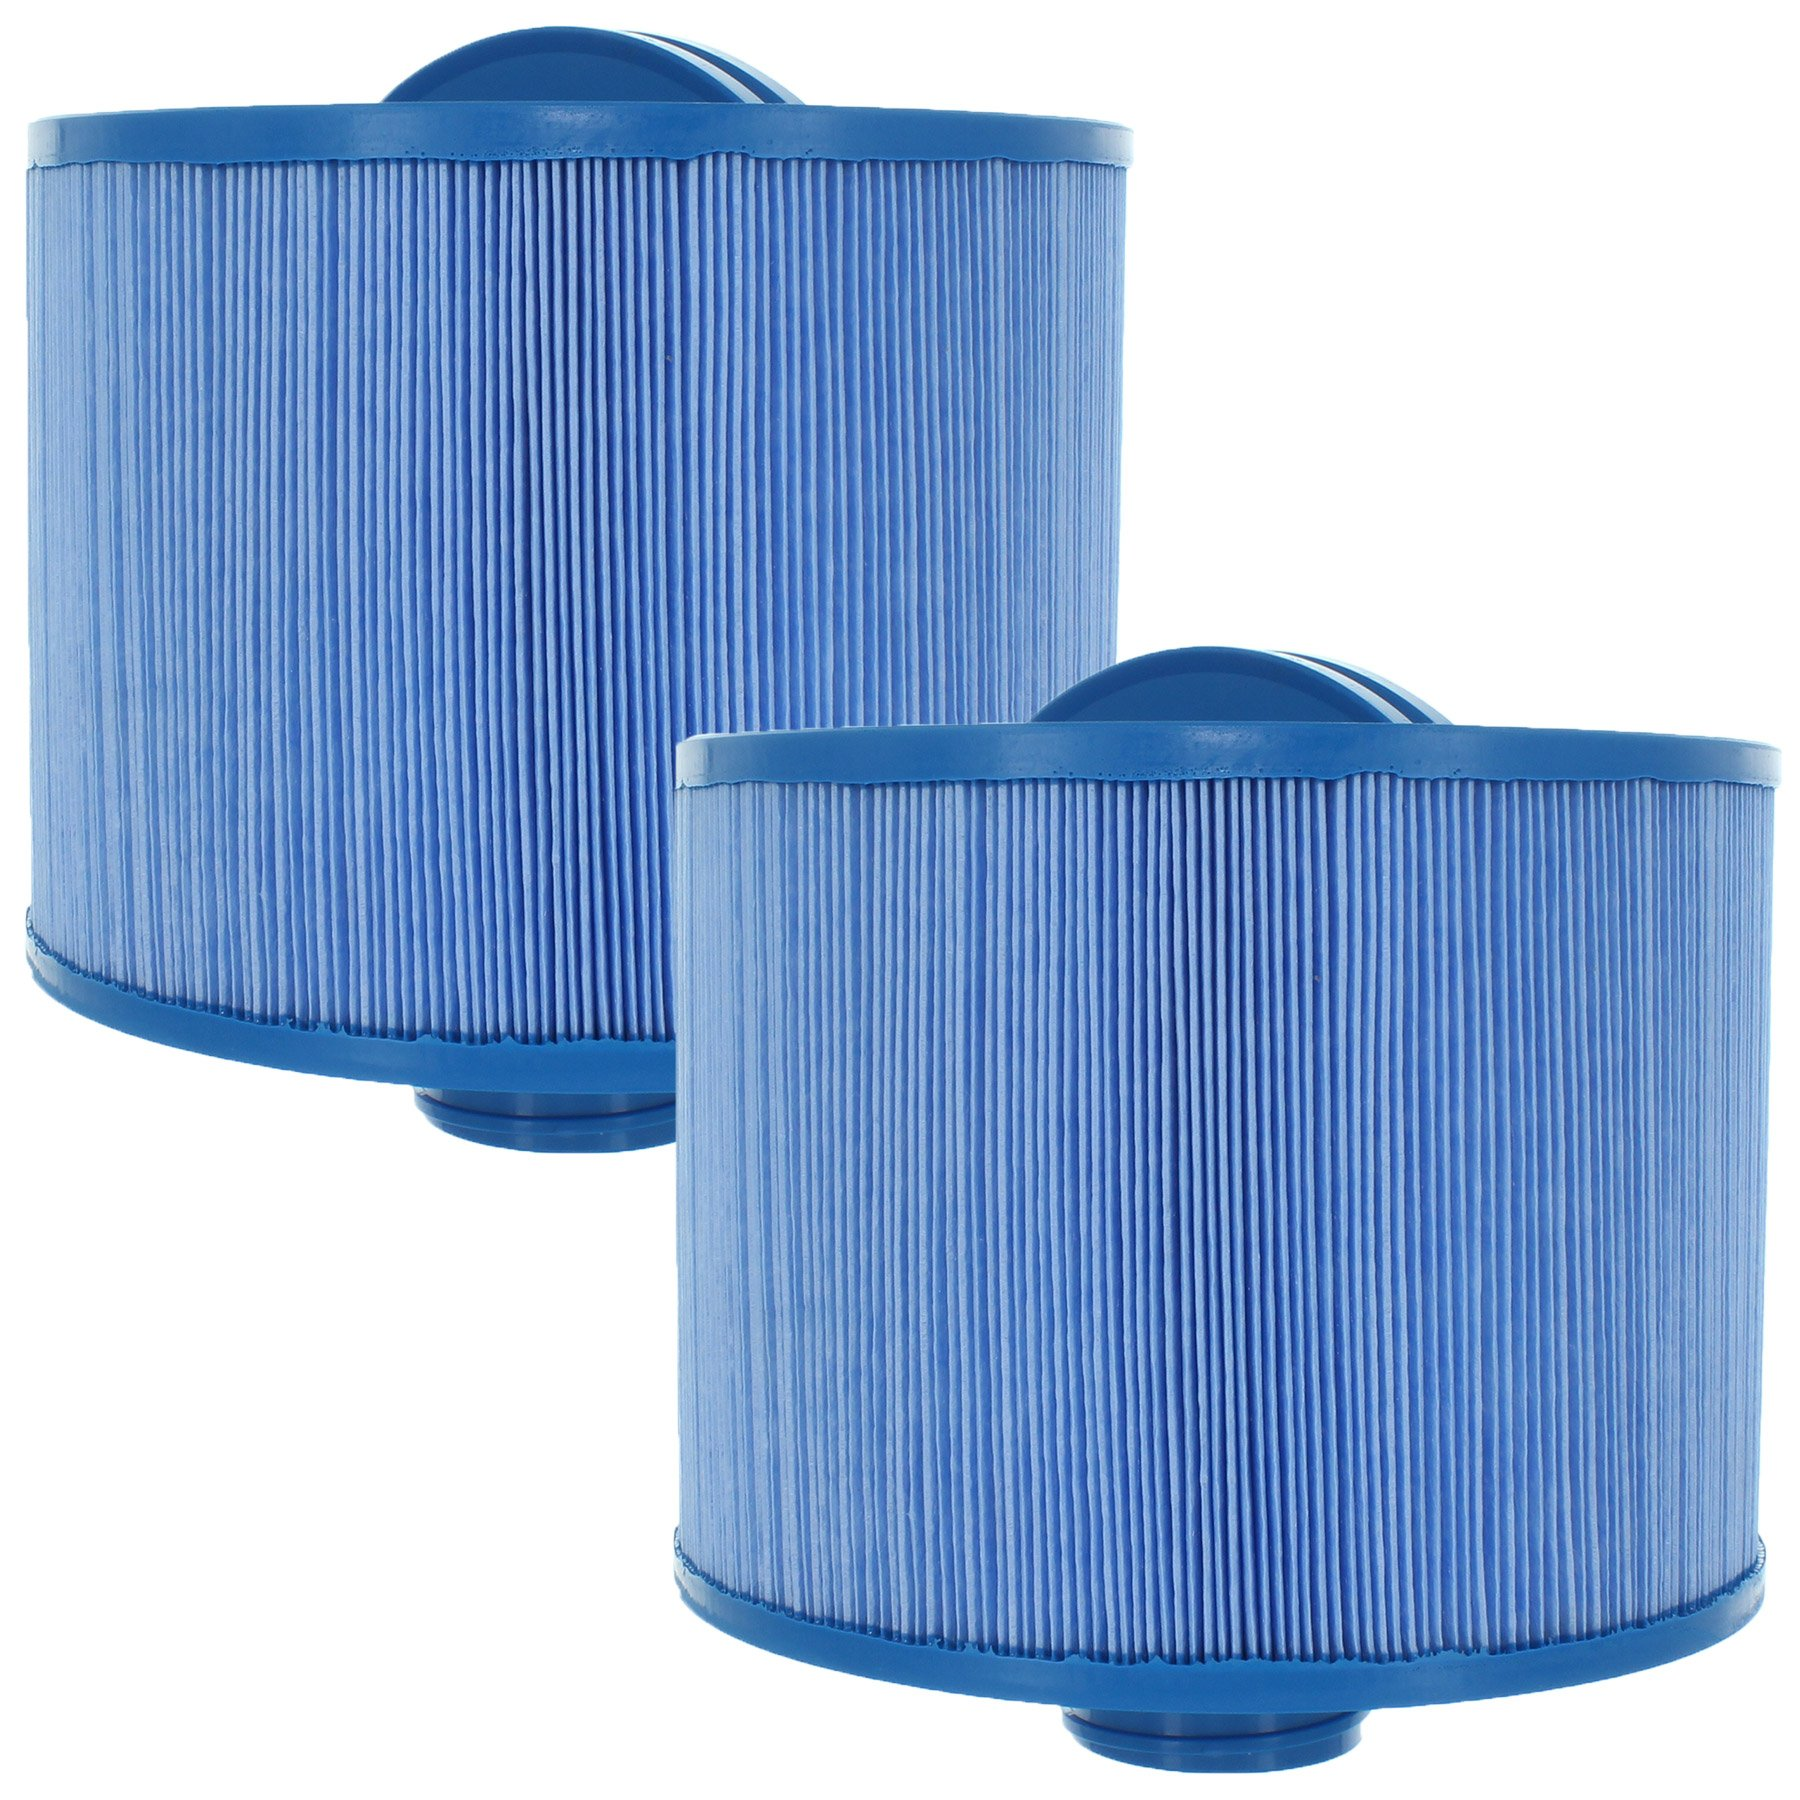 2-Pack Guardian Filters Replaces Unicel 8CH-950 8H5-200MB Pleatco PBF50-F2S PBF35-M Filbur FC-0536 Bull Frog - Antimicrobial by Guardian Filtration Products